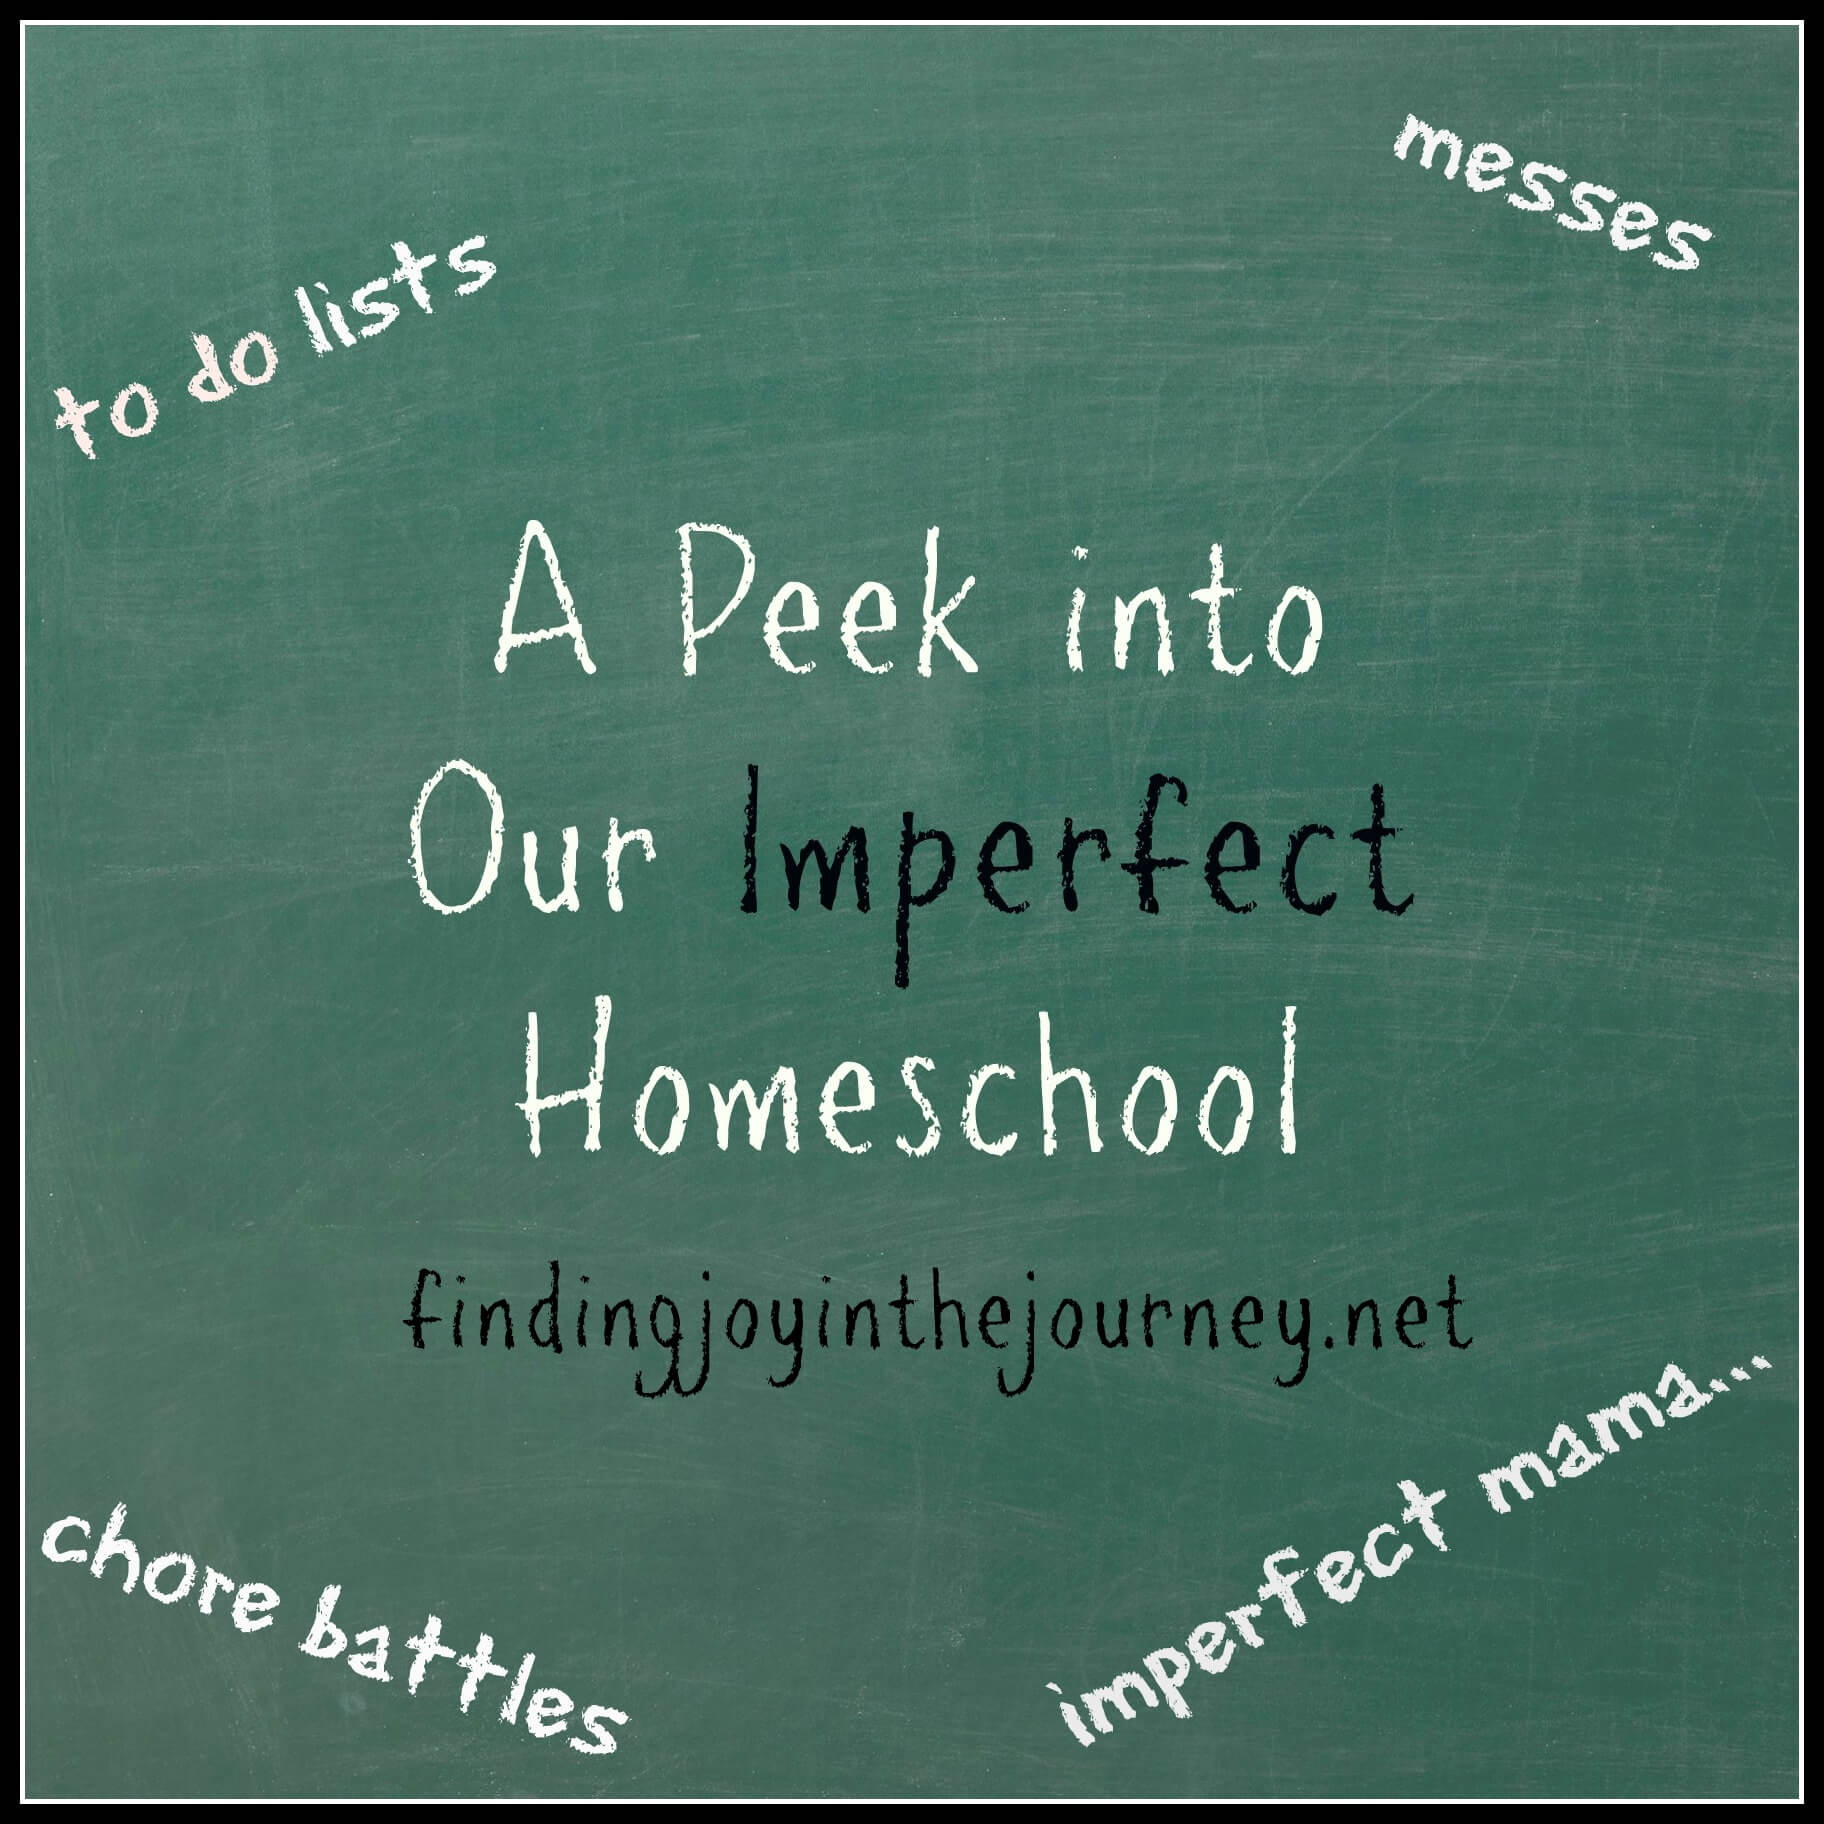 Our Imperfect Homeschool